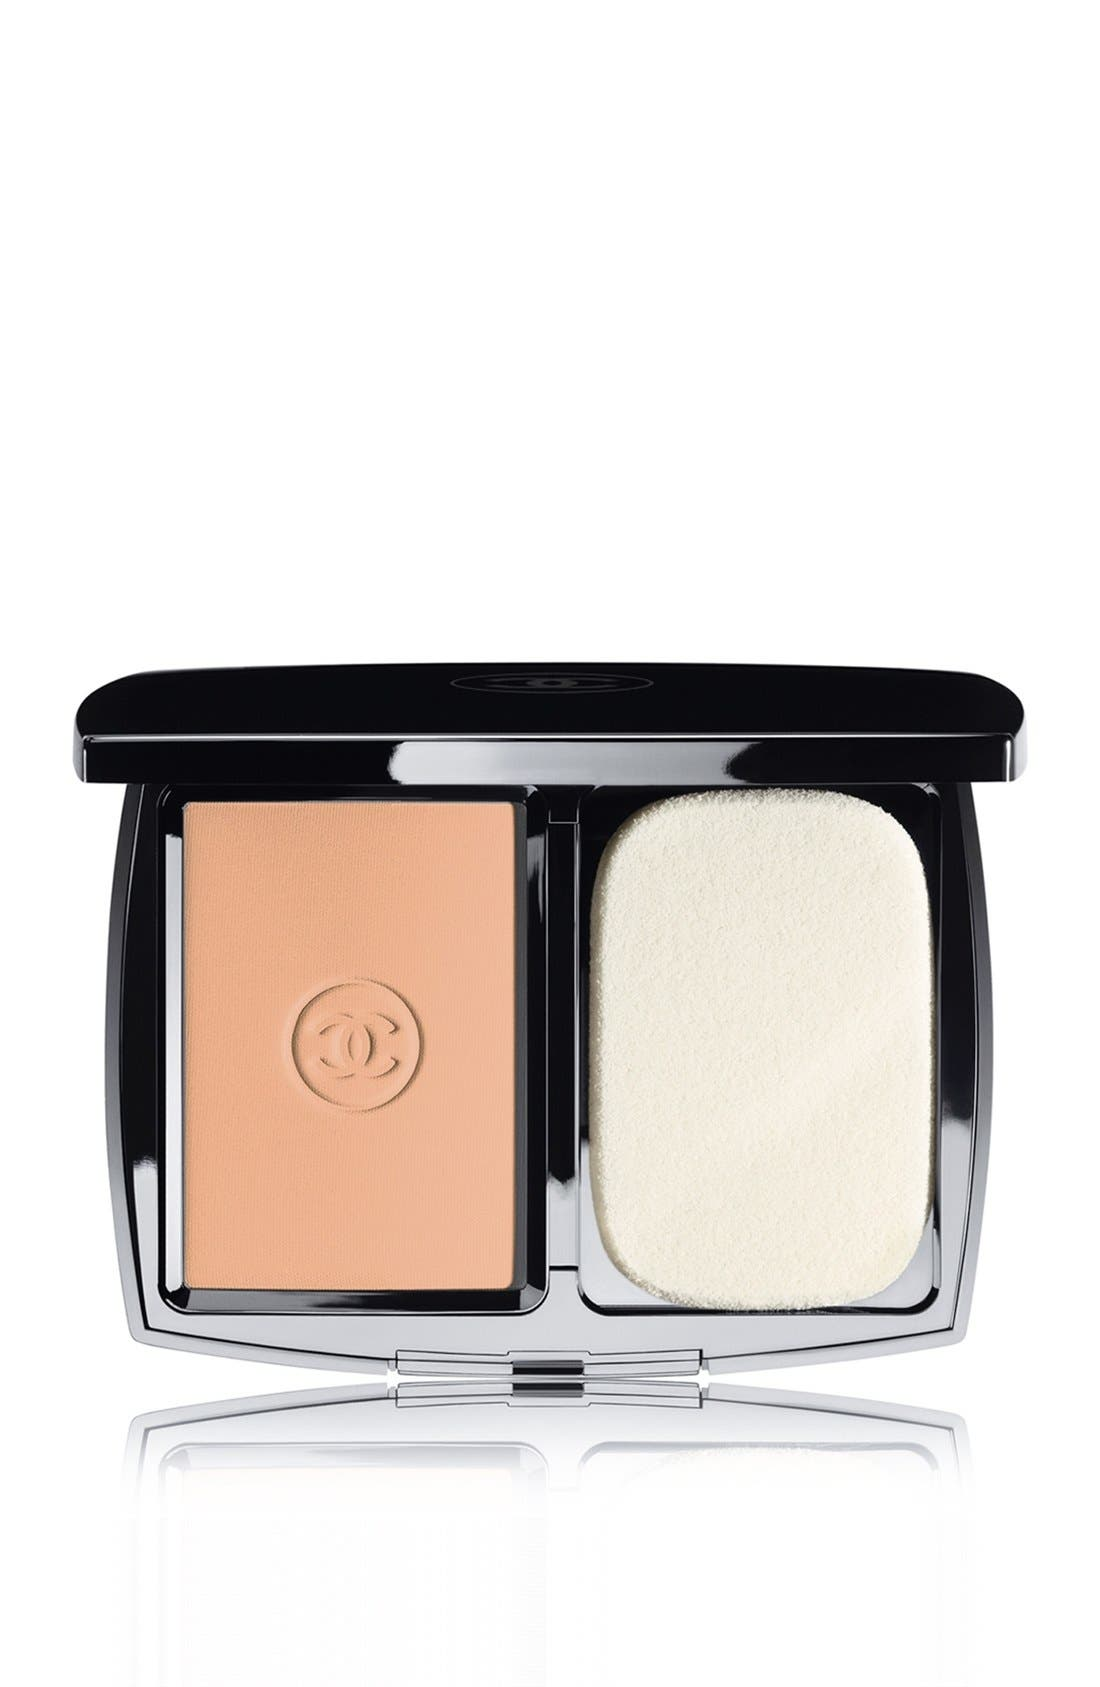 DOUBLE PERFECTION LUMIÈRE<br />Long-Wear Flawless Sunscreen Powder Makeup Broad Spectrum SPF 15,                             Main thumbnail 6, color,